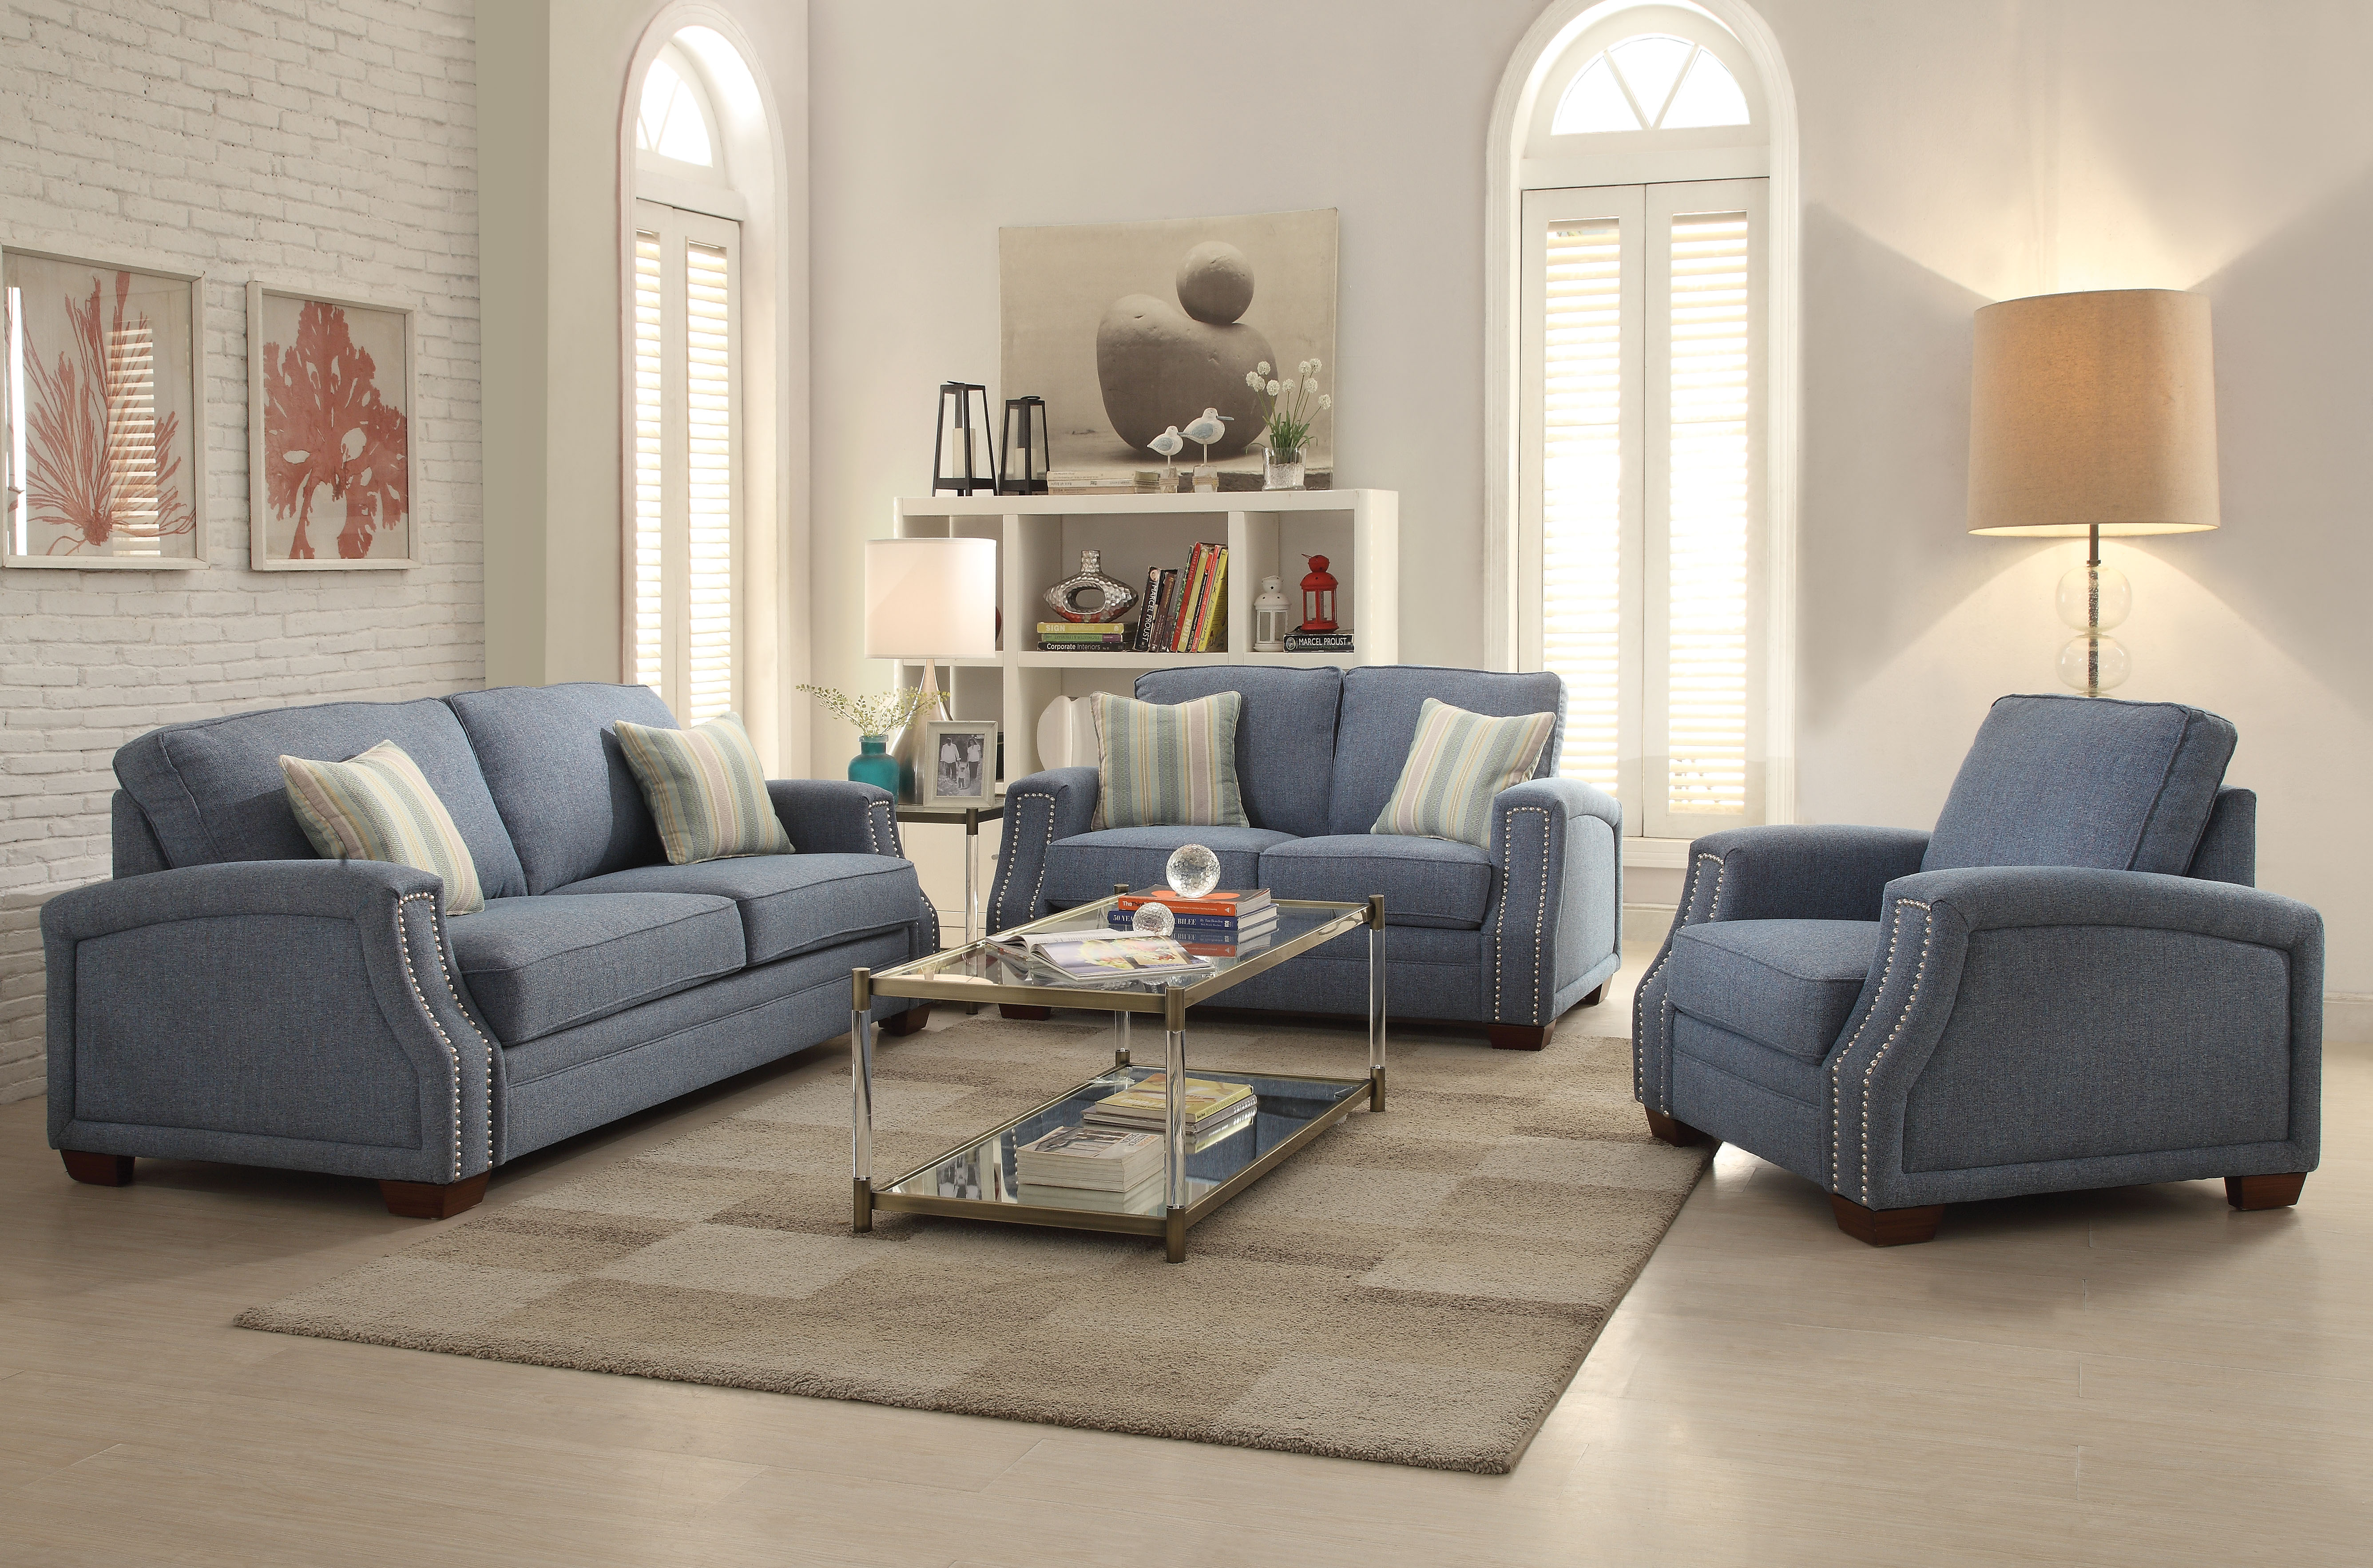 Acme betisa nailhead loveseat with 2 pillows light blue fabric walmart com